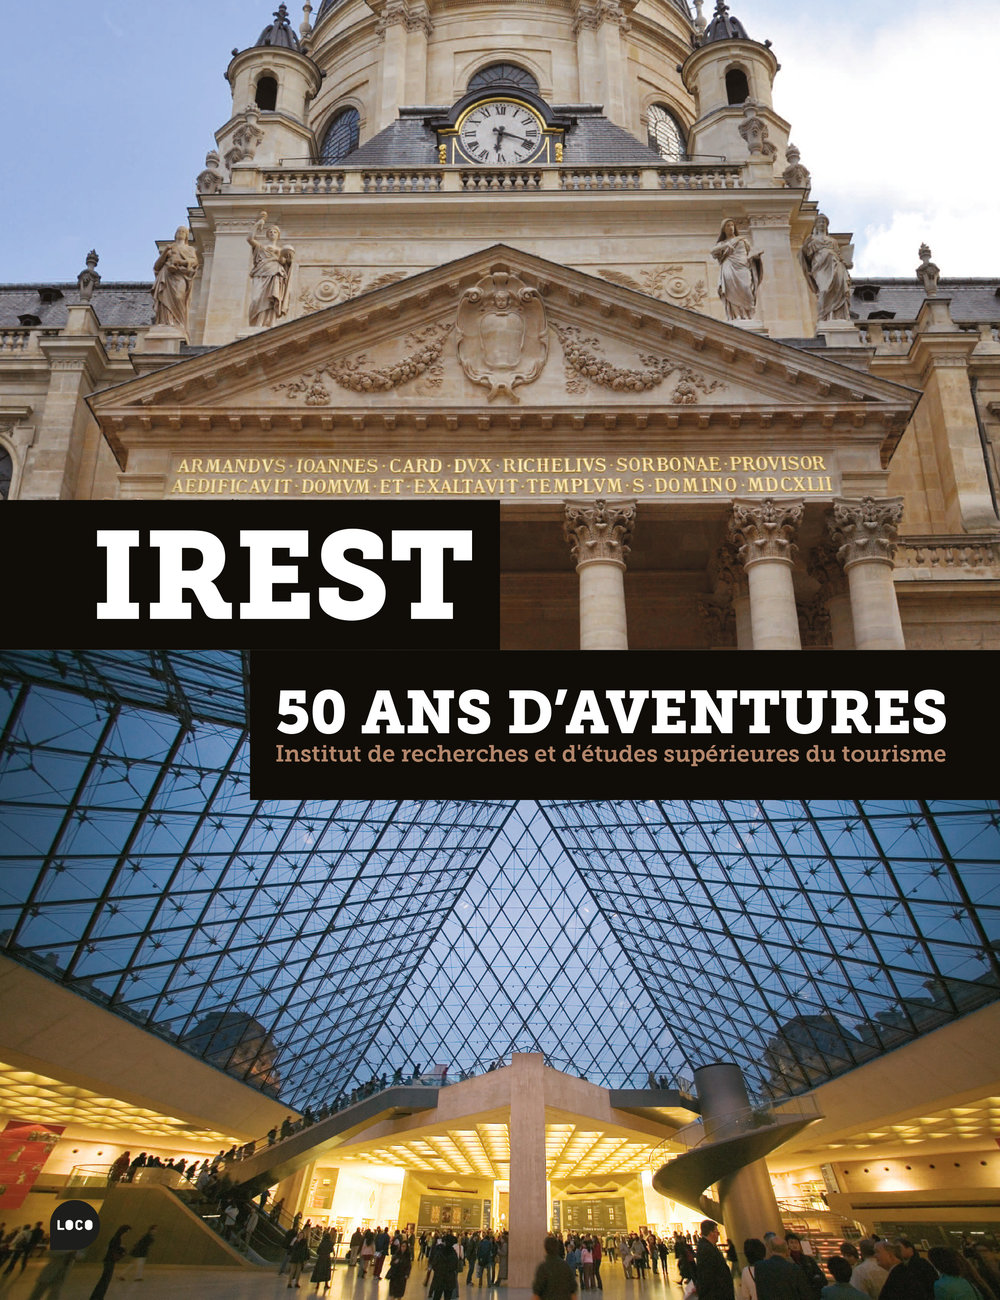 IREST50 ans d'aventures - Corporate Book Design for French Institute of Research and Studies on Tourism IRESTClient: IREST / Éditions Loco